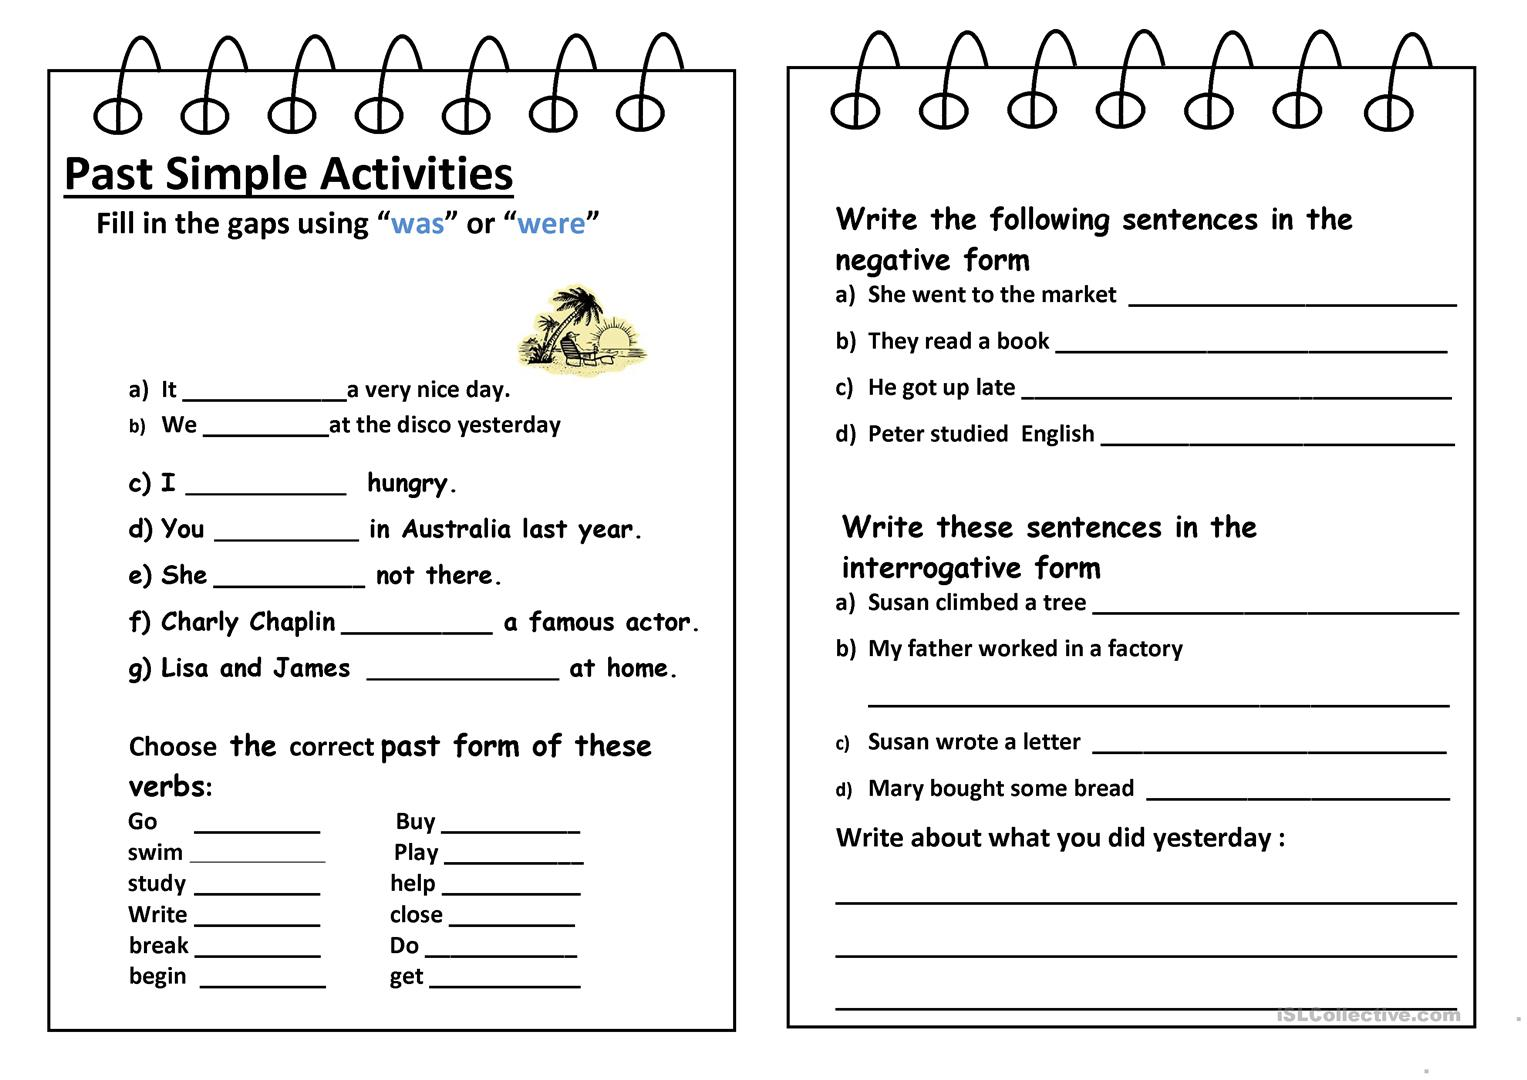 Past Simple Activities Worksheet